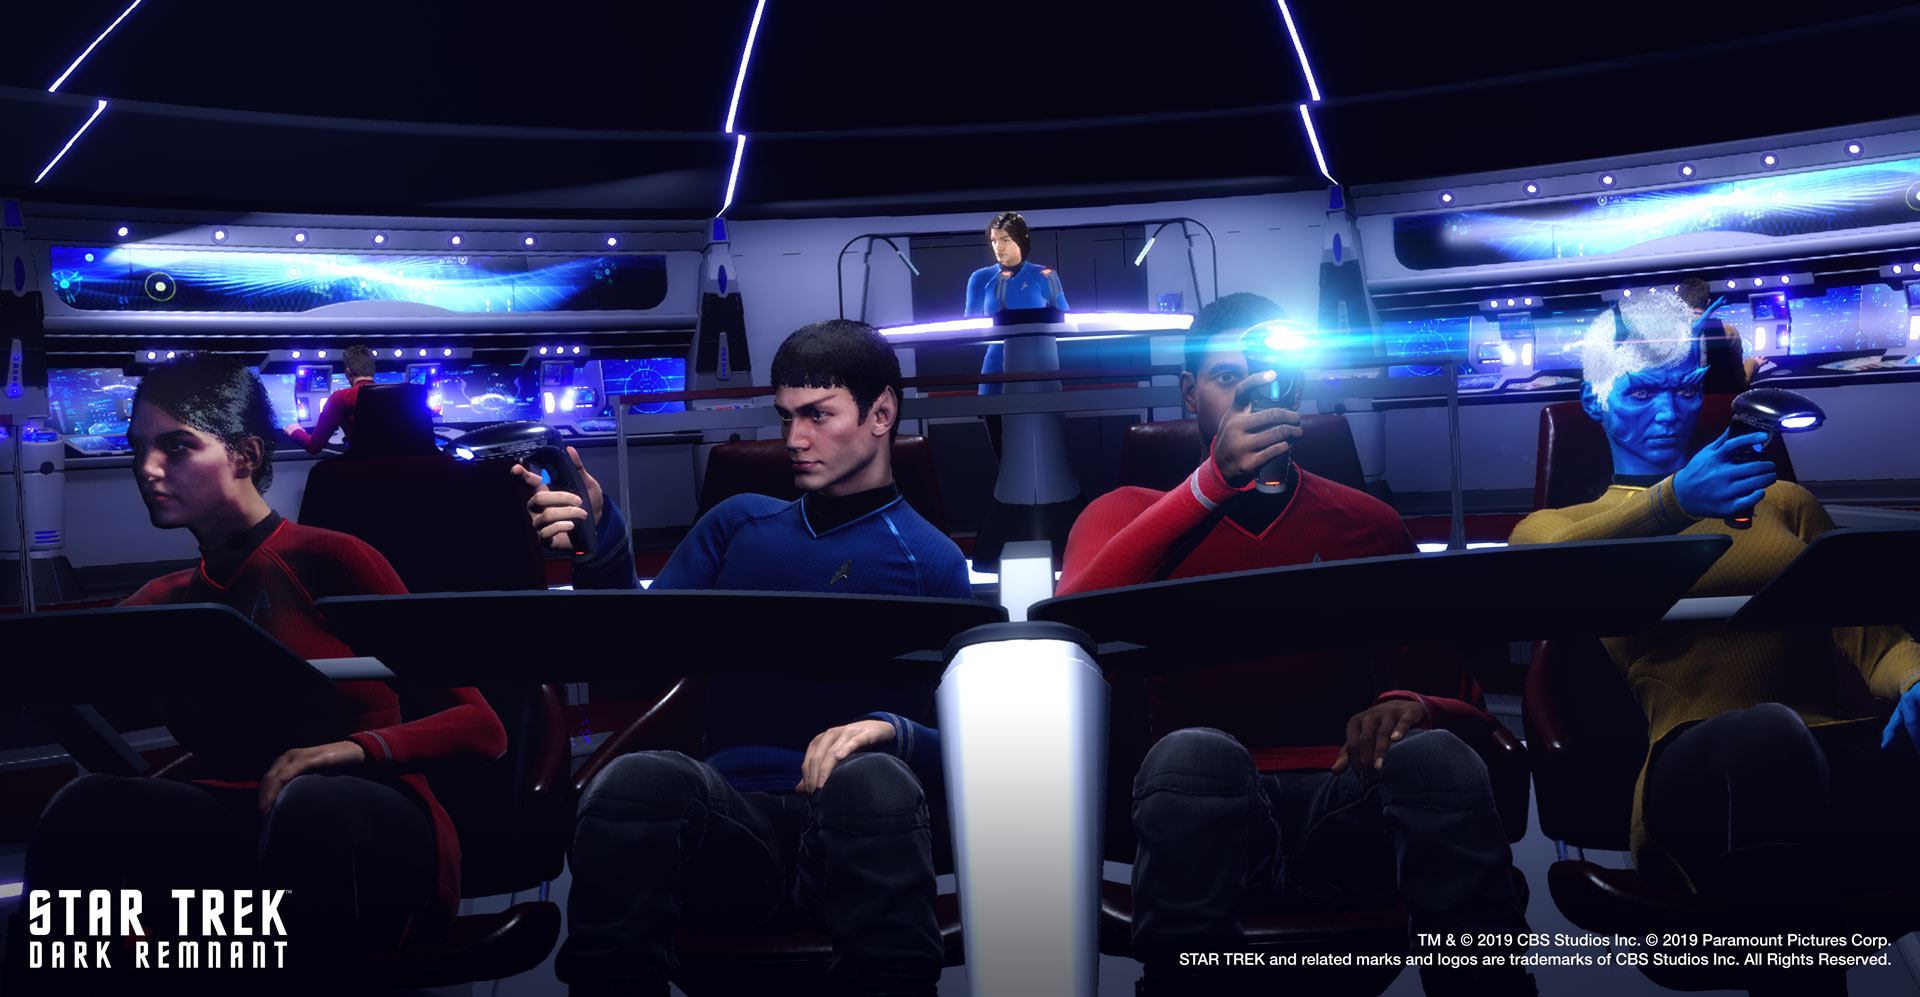 New Multiplayer 'Star Trek' VR Sport Rolls Out to Dave & Buster's Nationwide – Street to VR 4